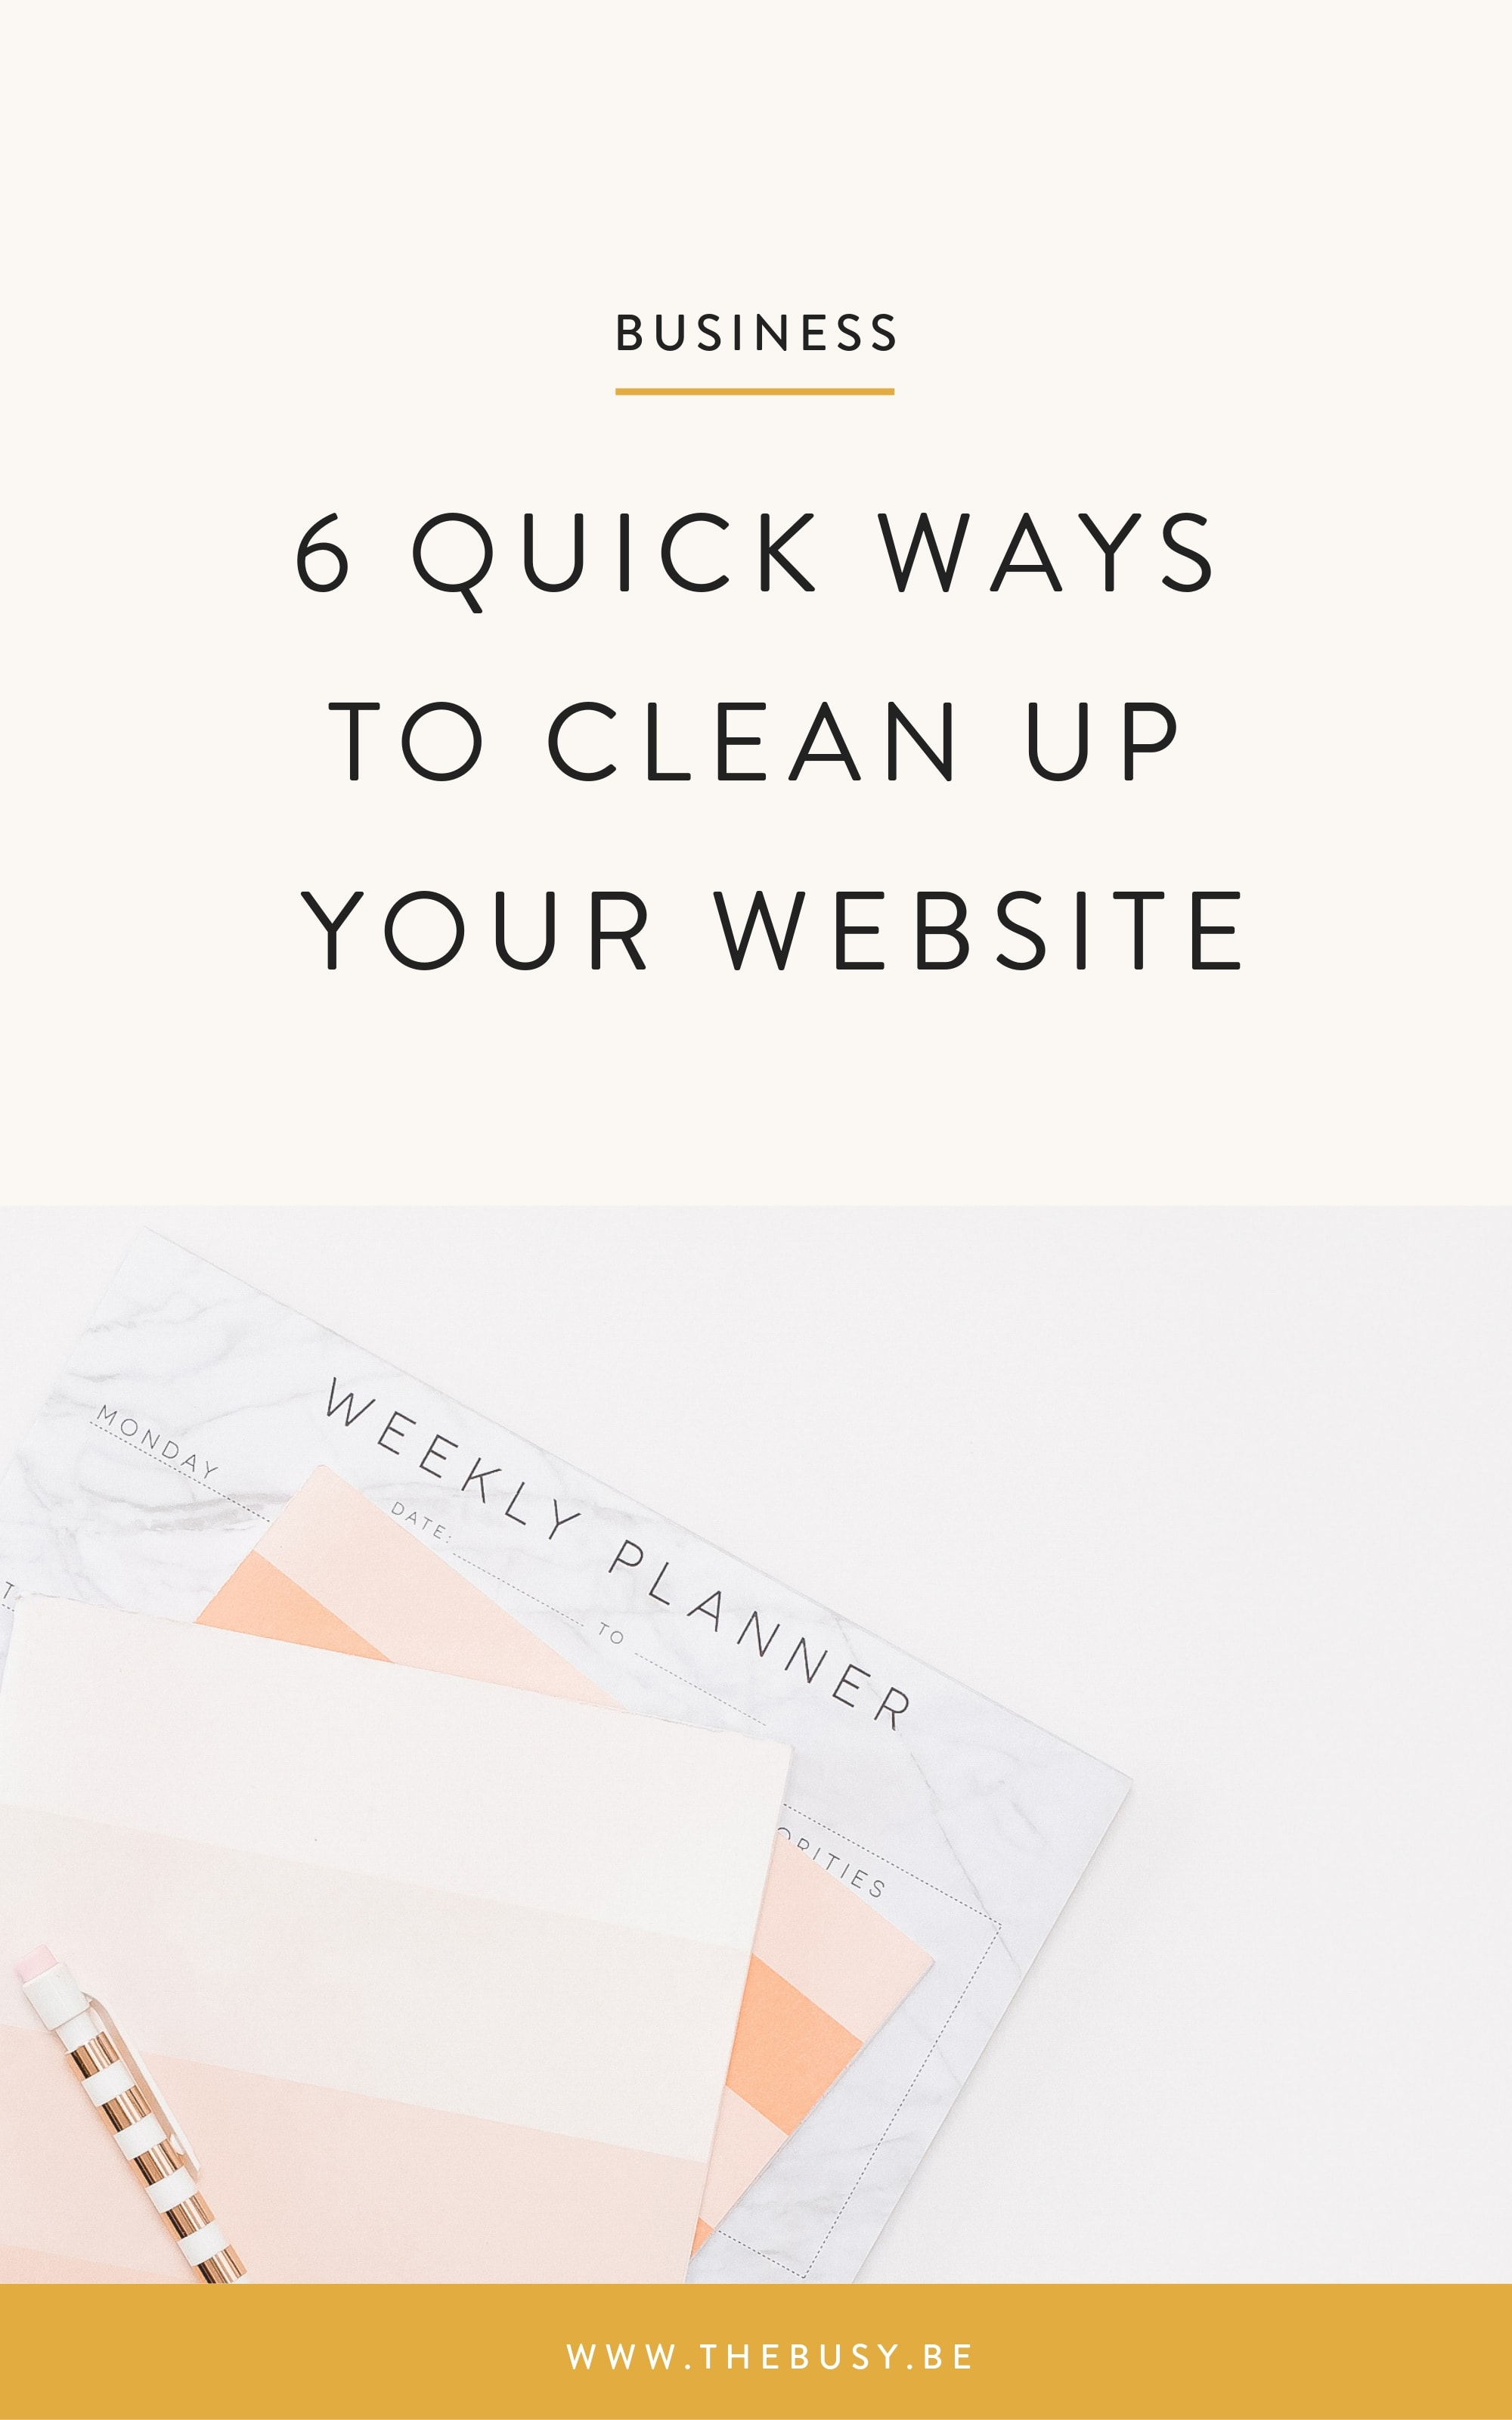 6 Quick Ways to Clean Up Your Website - The Busy Bee